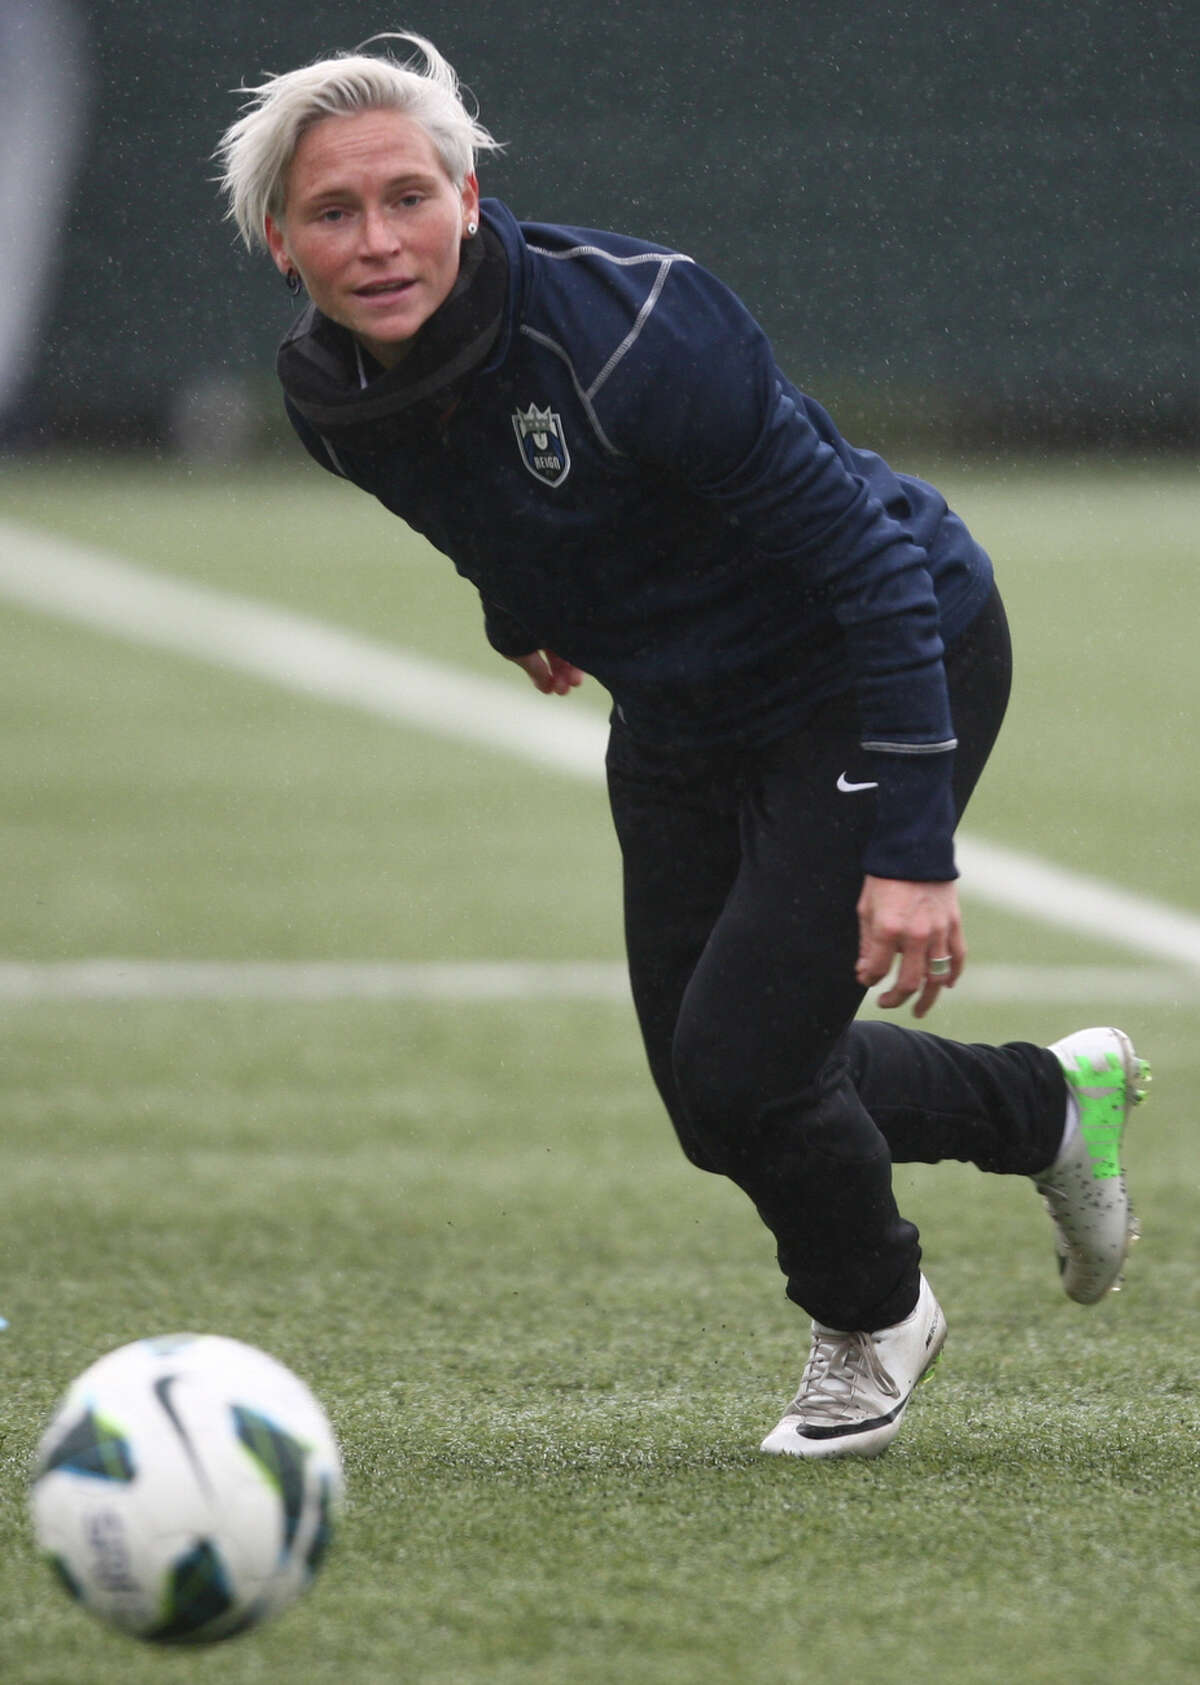 Seattle Reign player Jess Fishlock chases a ball during practice.